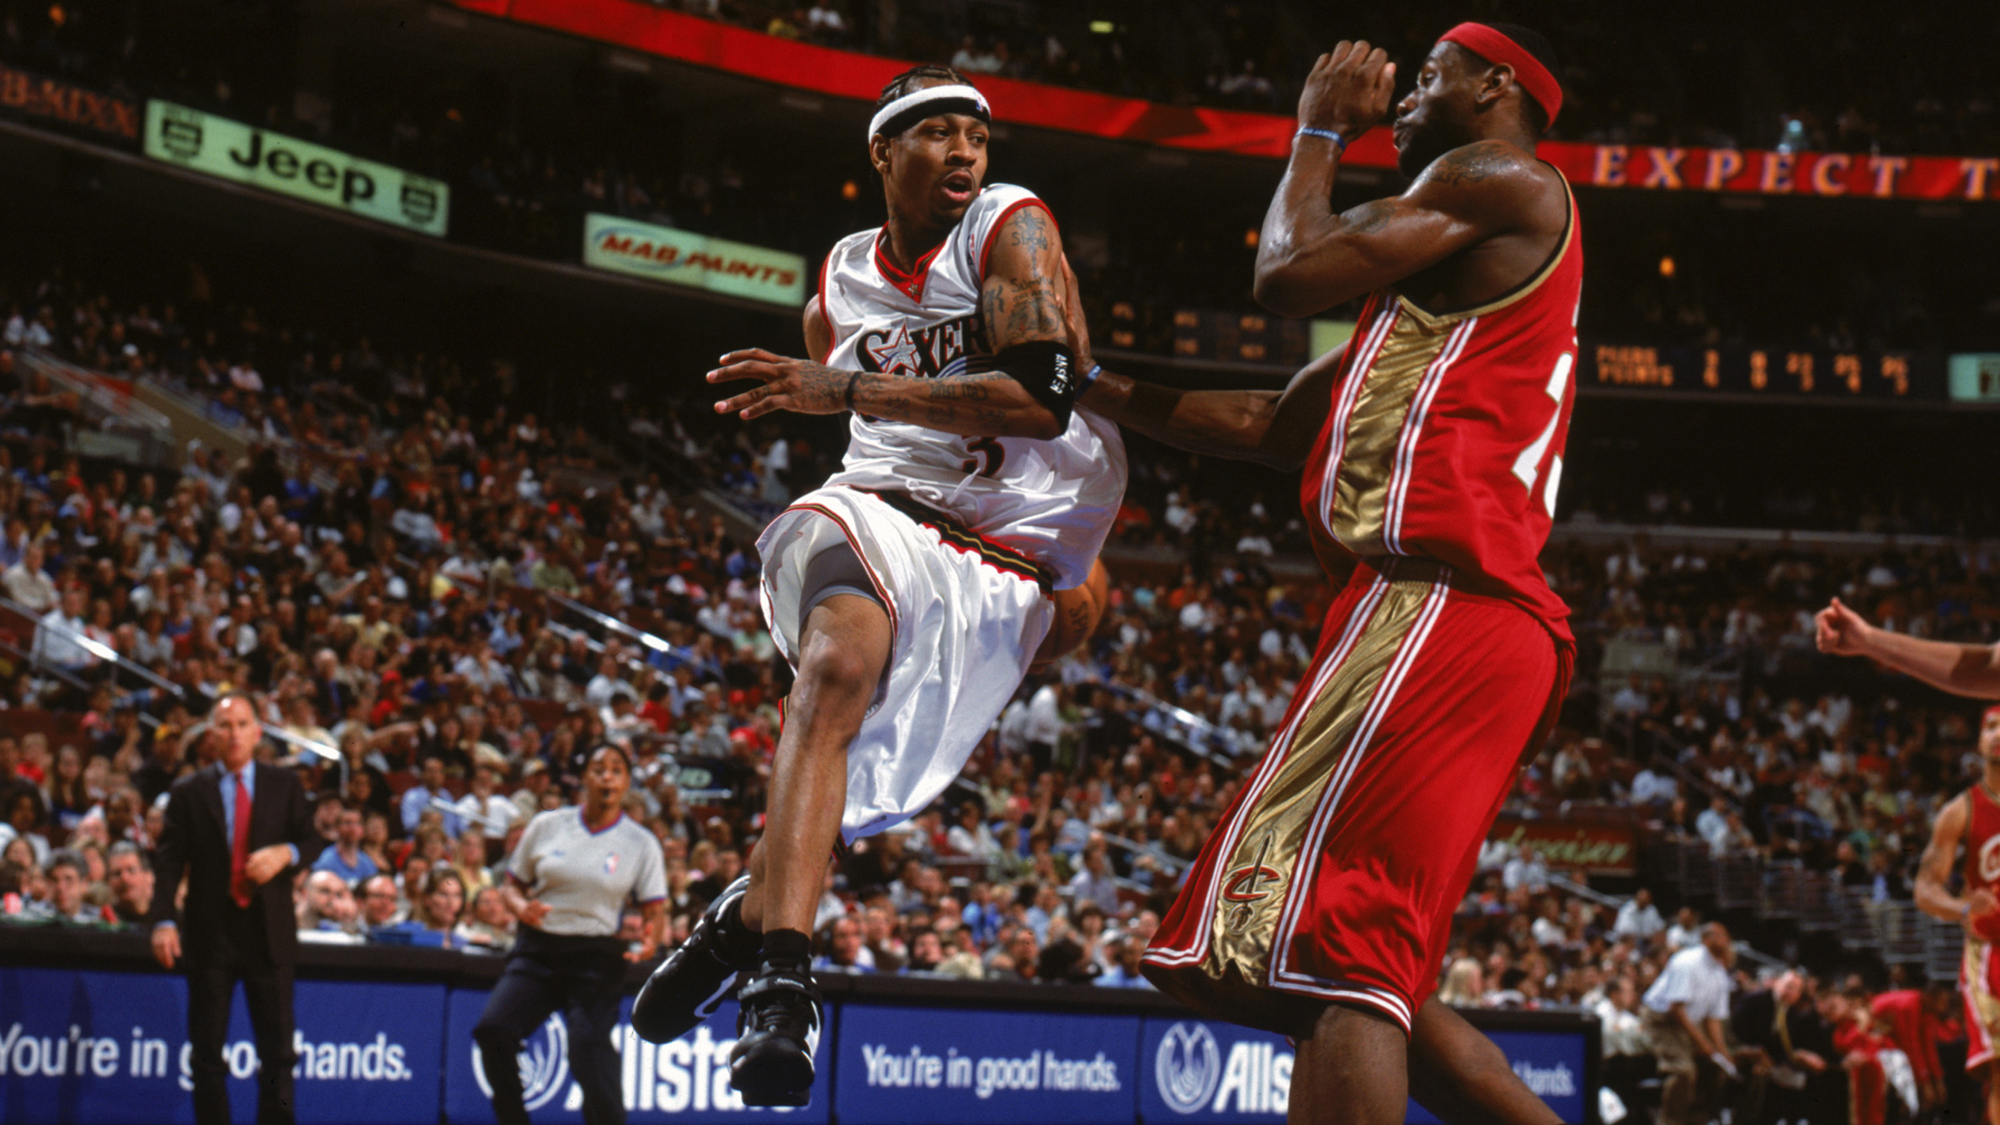 Without Allen Iverson, there would be no LeBron